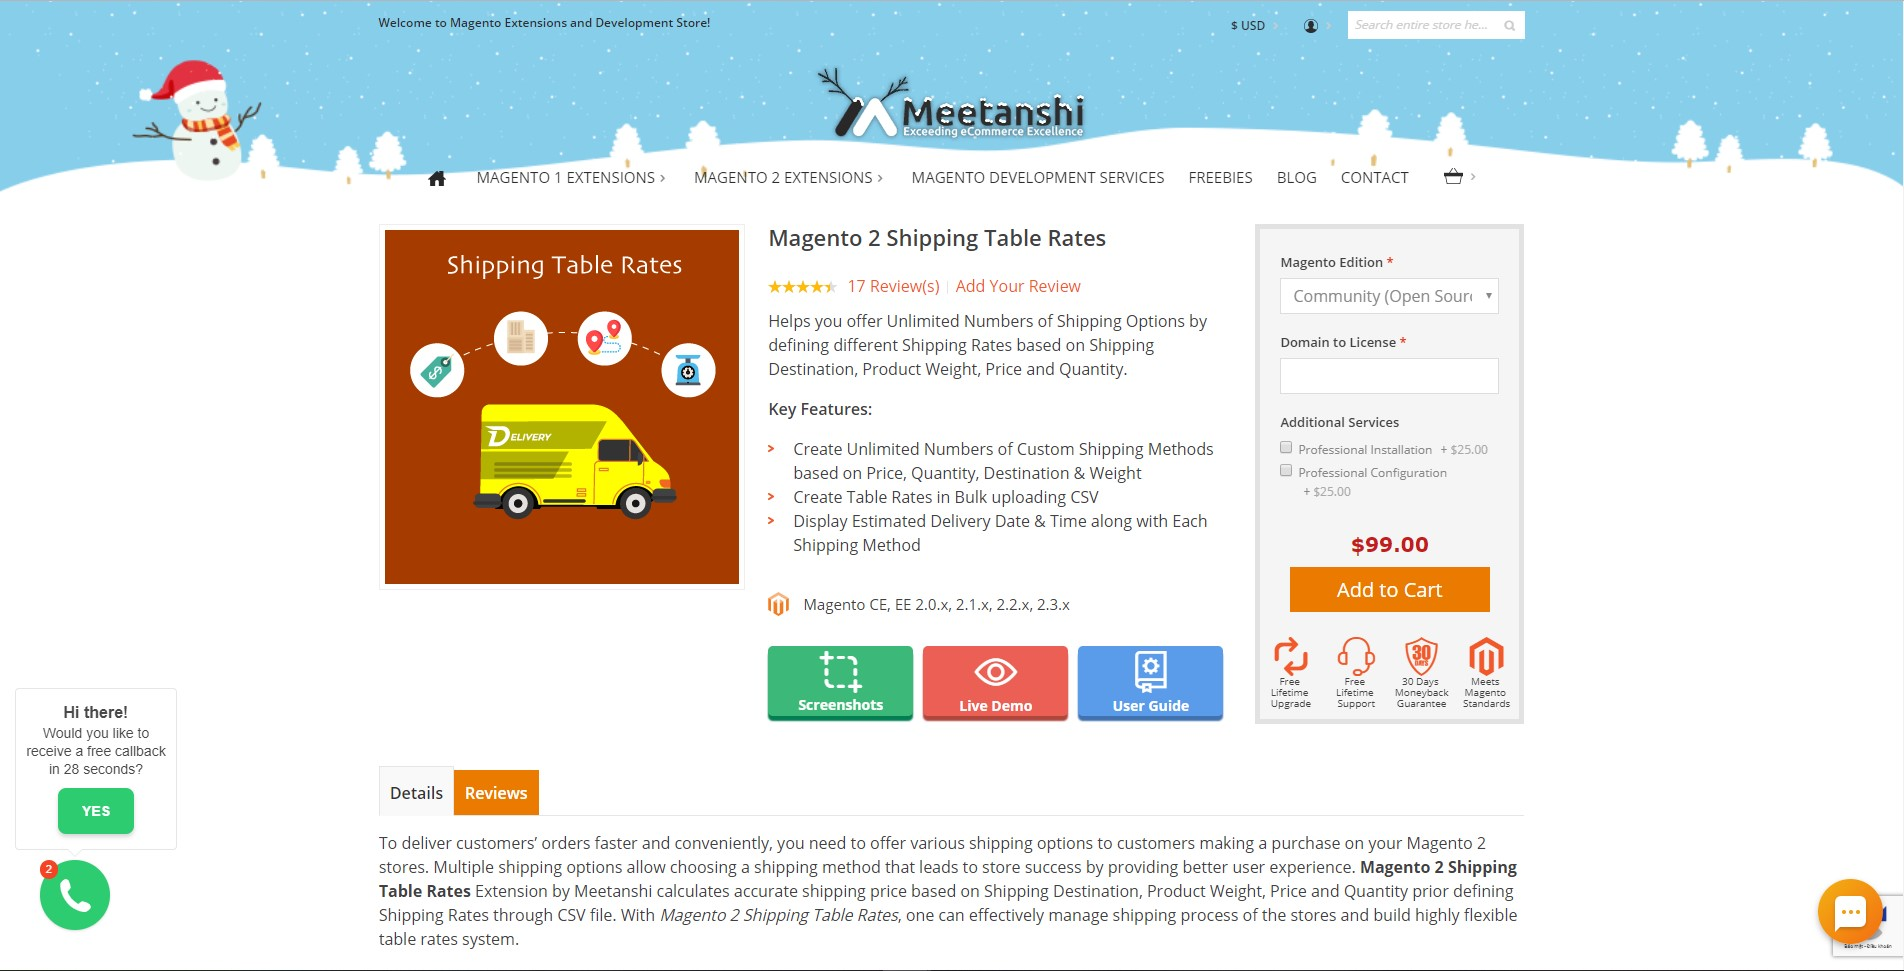 Magento 2 Shipping Table Rates